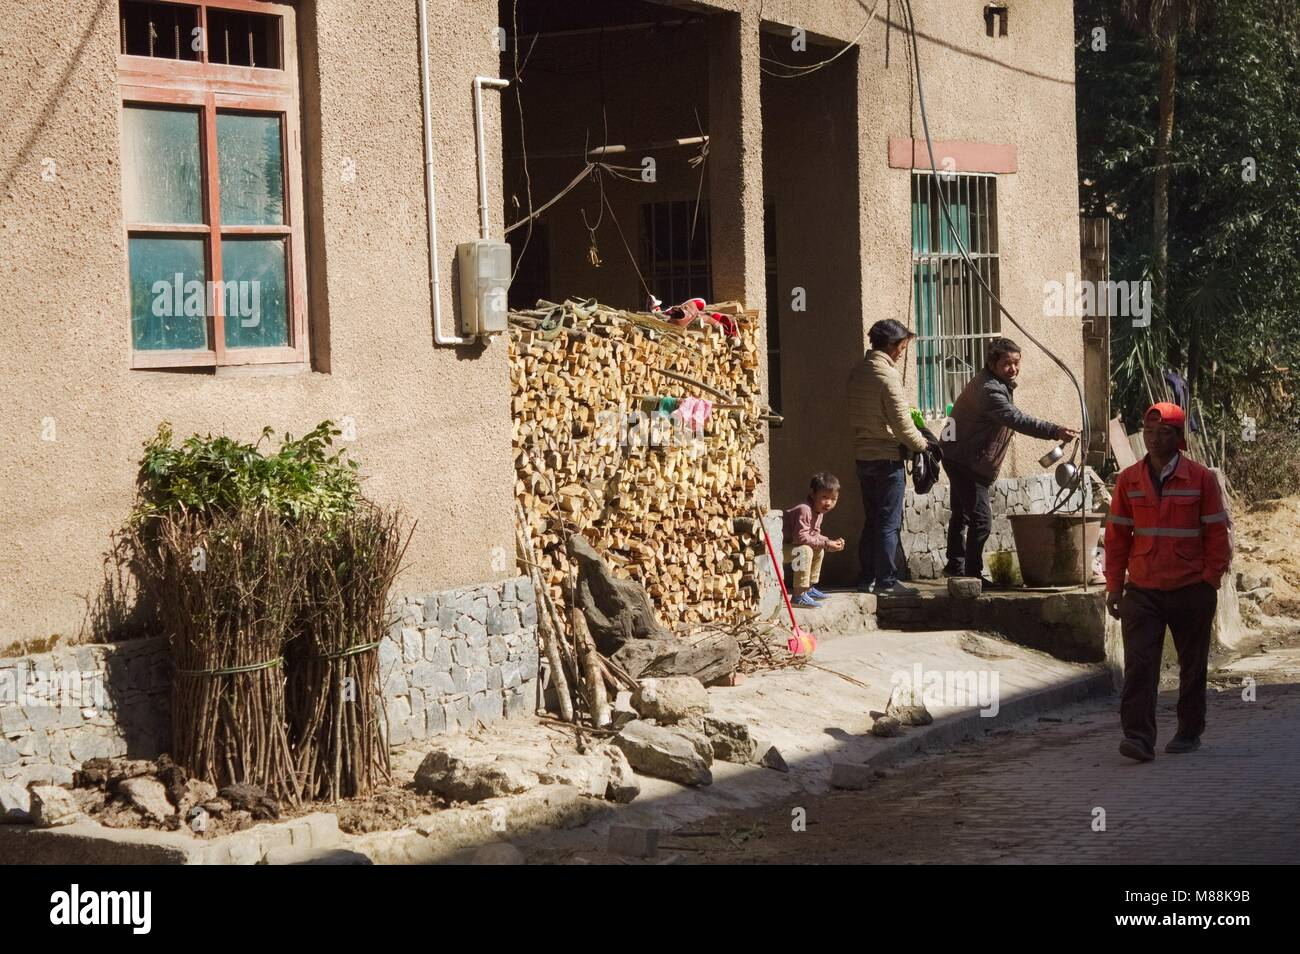 Duo Yi Shu Village, Yunnan, China - December 26 2017: A chinese family is working at home - Stock Image